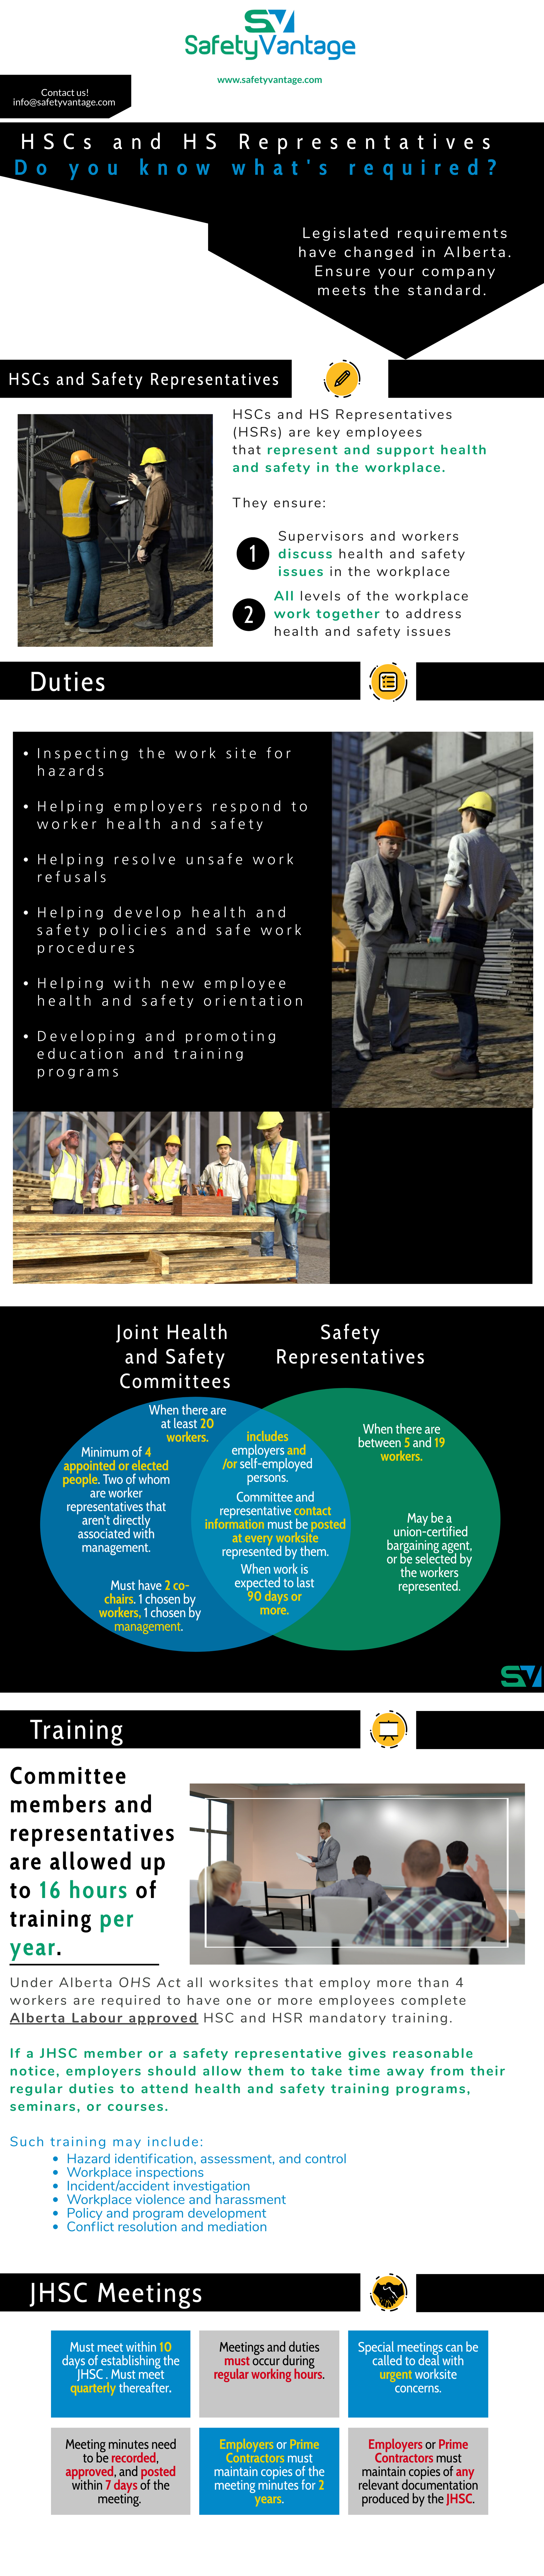 InfoGraphic - Ensure your company meets the Alberta legislative requirements for Health & Safety Committees (HSC) and Representatives (HSR)